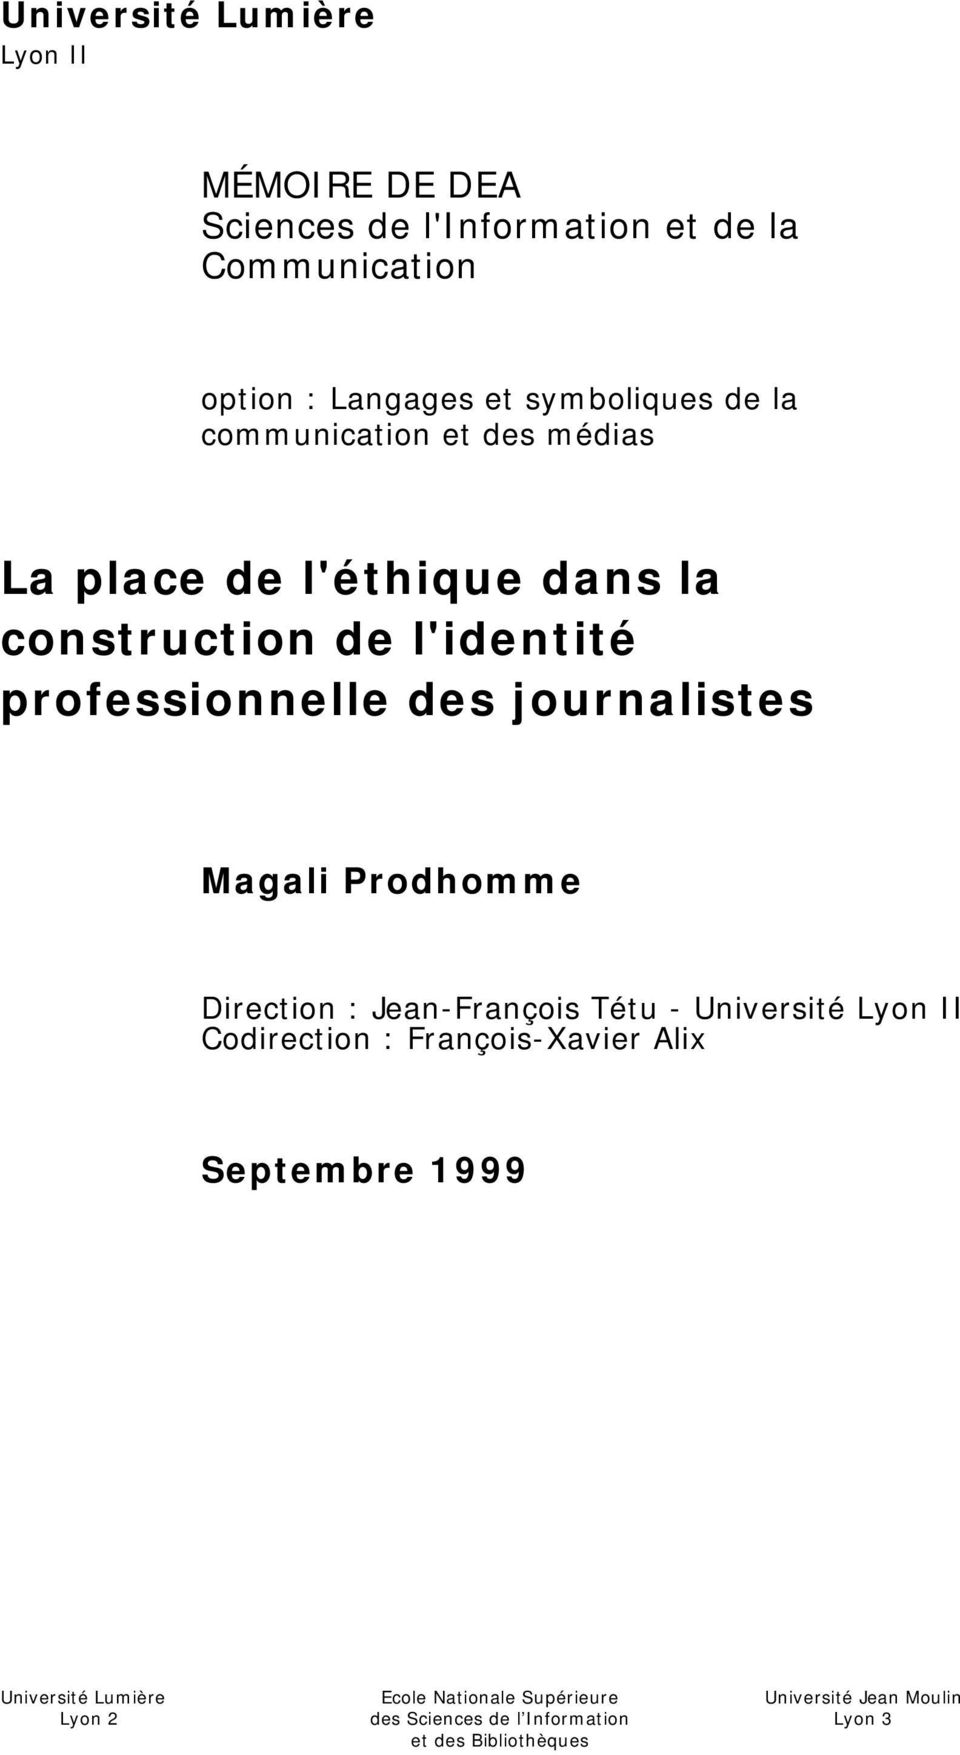 Magali Prodhomme Direction : Jean-François Tétu - Université Lyon II Codirection : François-Xavier Alix Septembre 1999